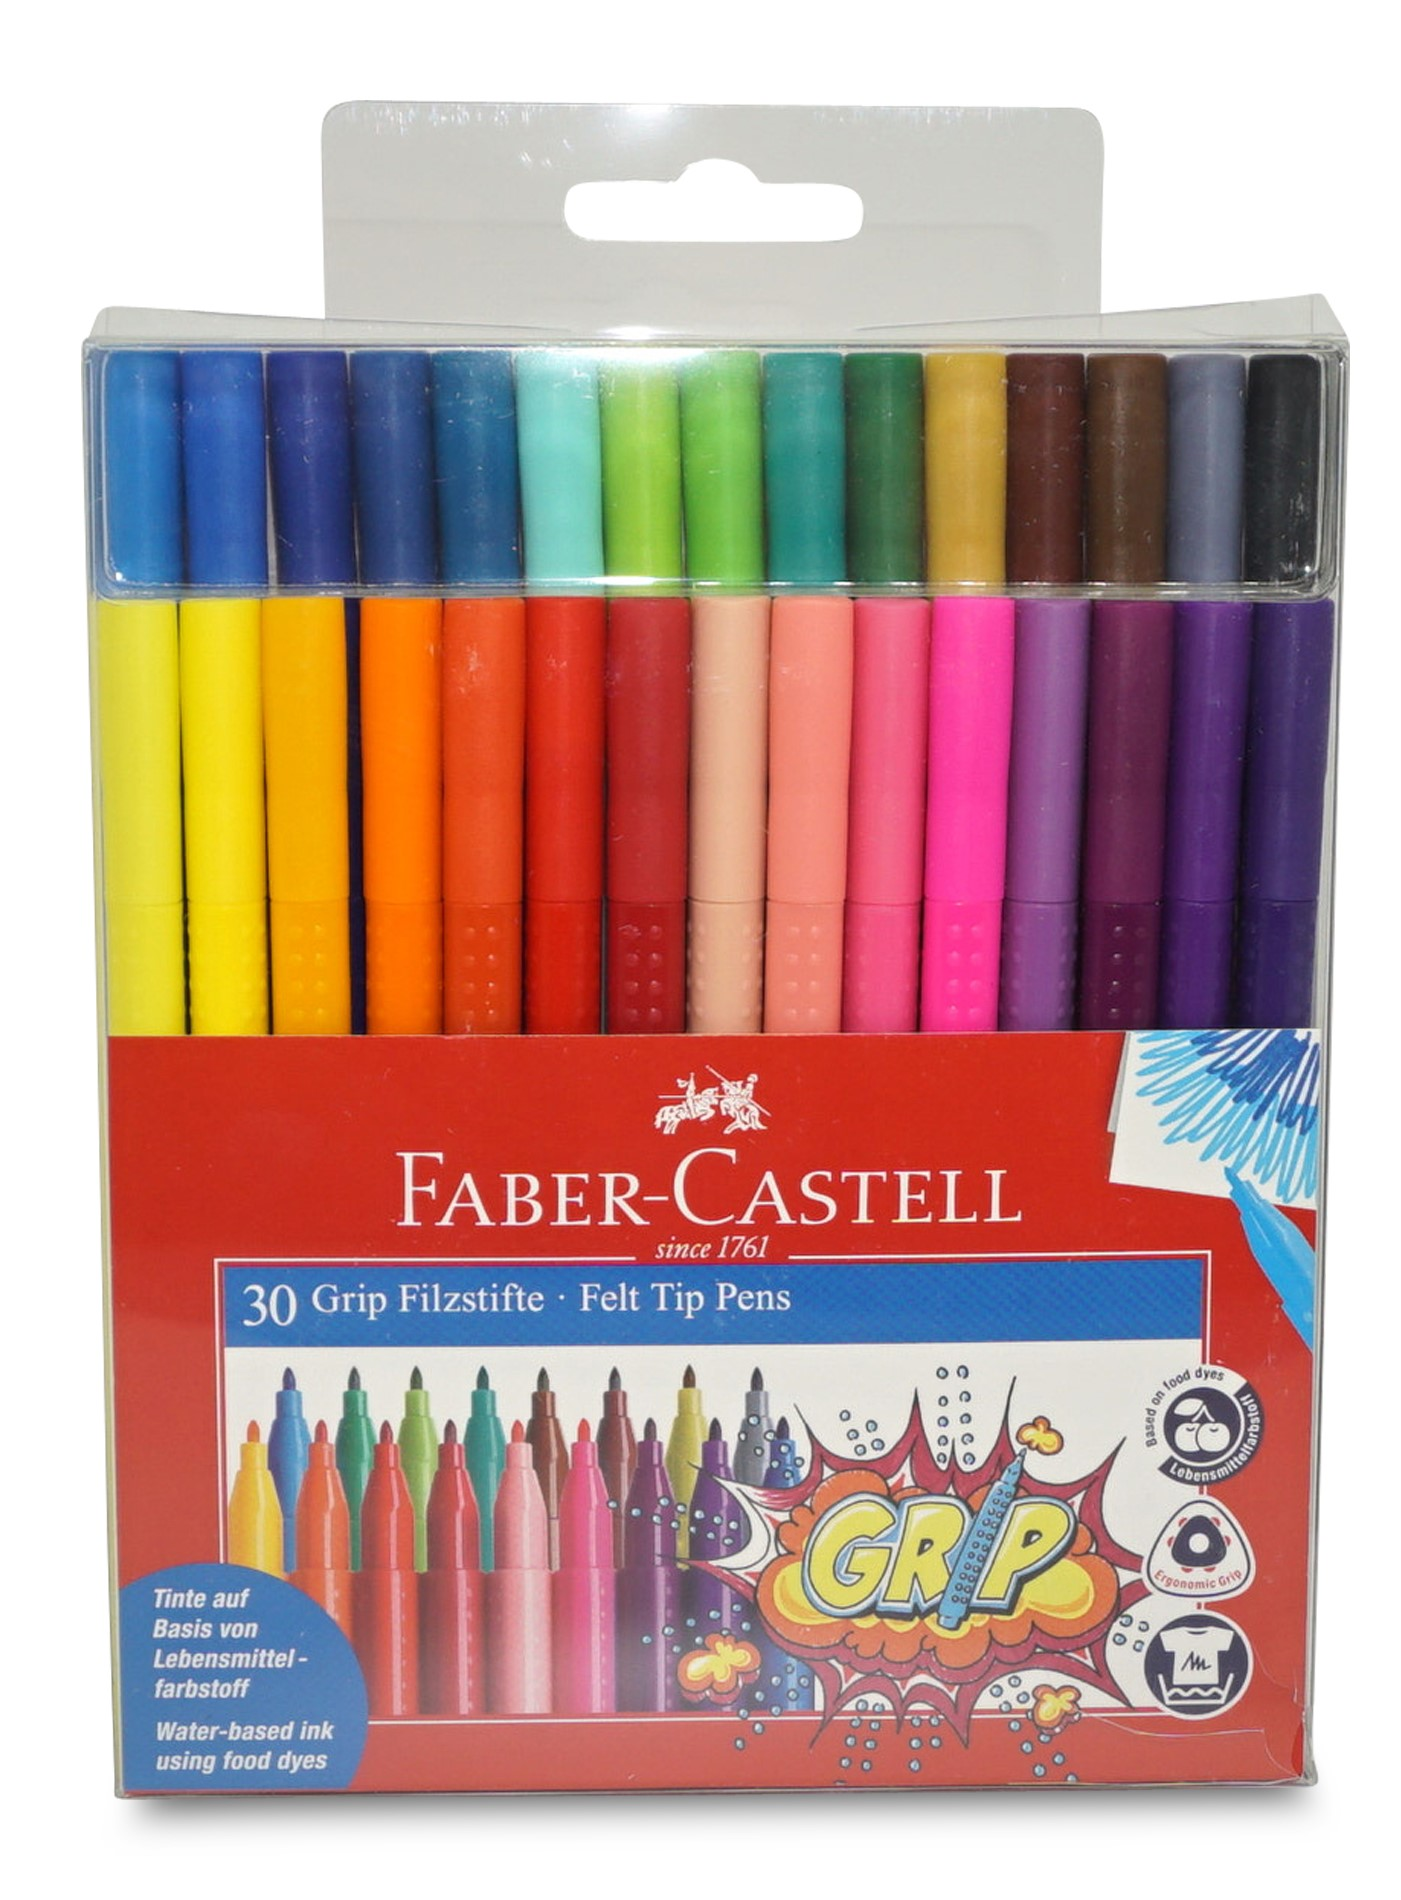 Faber-Castell Colour Grip Filzstifte, 30er Etui